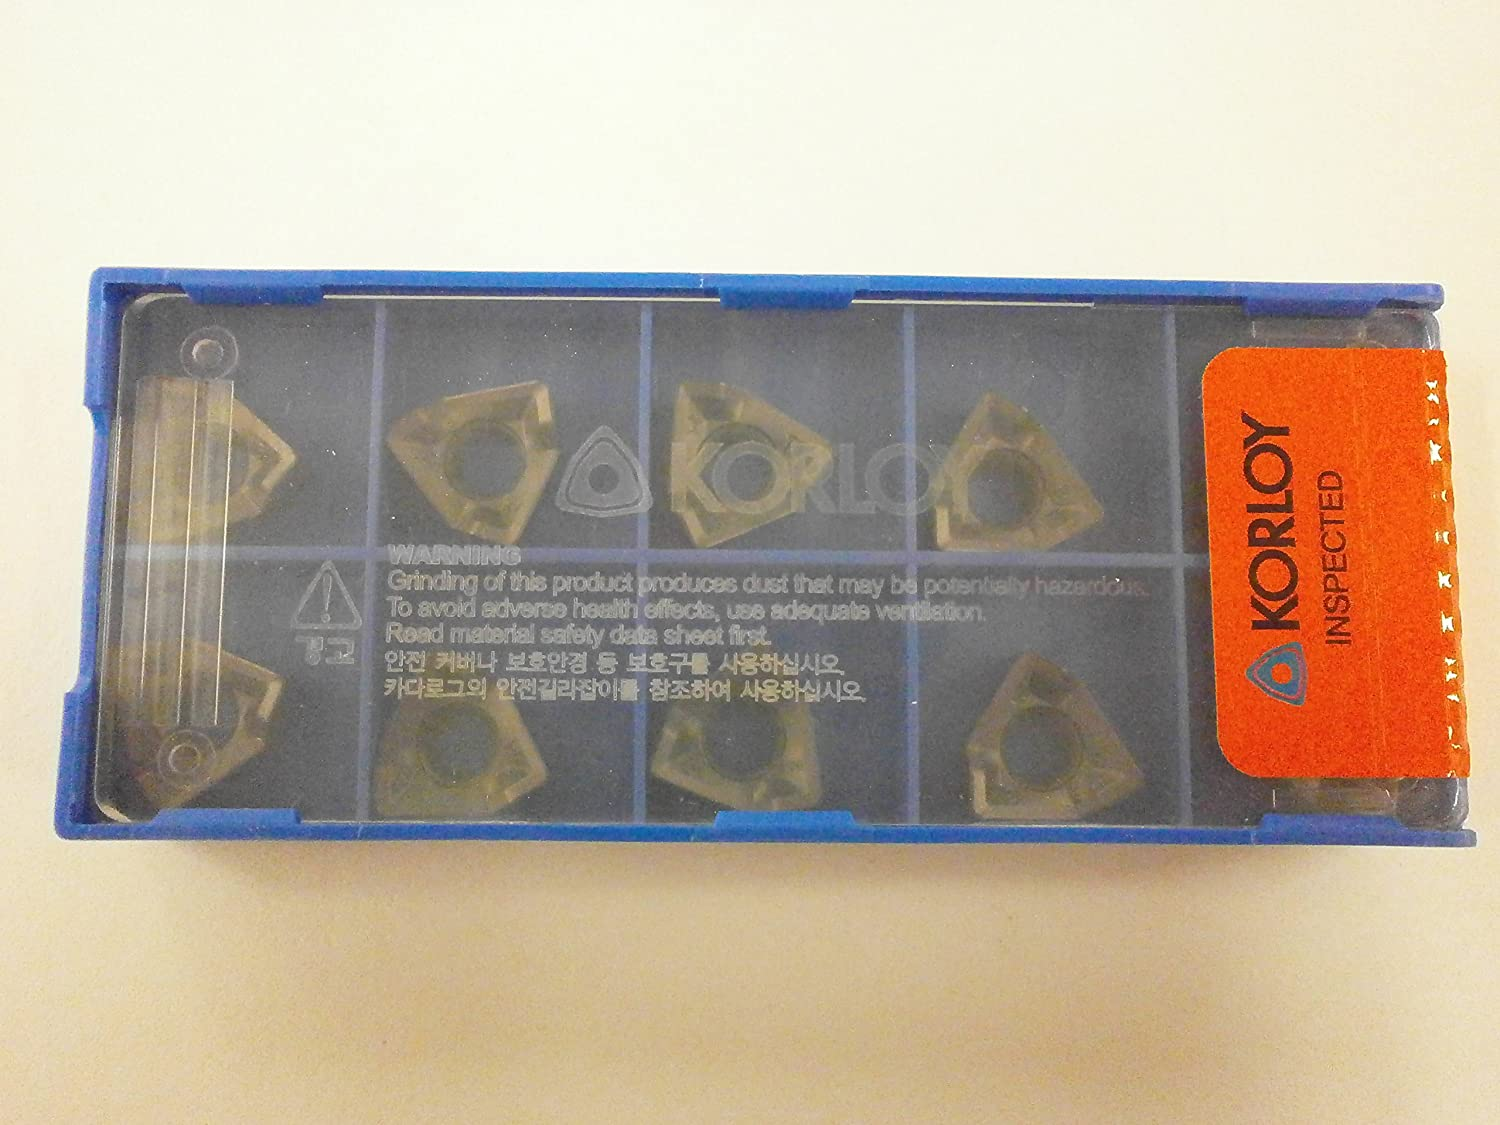 Latest item 10pc Korloy XNKT 080508PNSR-MM Indexable Inserts Carbide Max 86% OFF PC5300